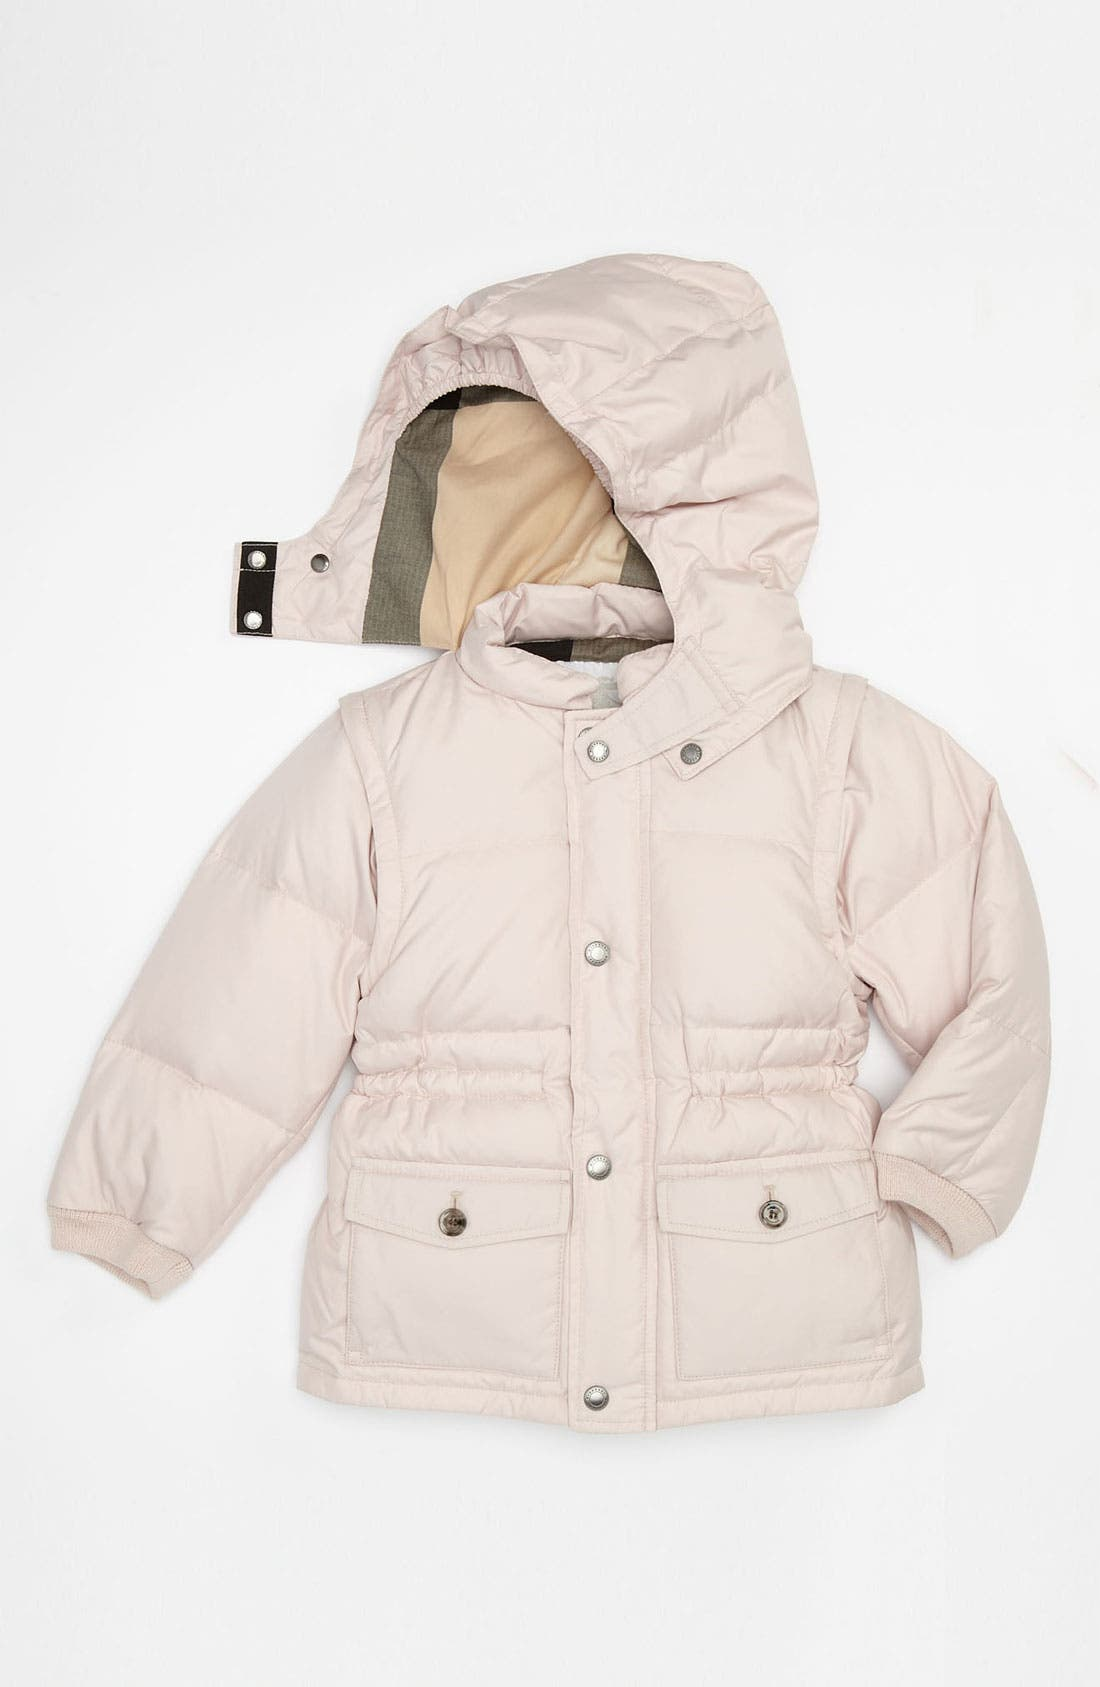 Alternate Image 1 Selected - Burberry Convertible Puffer Jacket (Toddler)